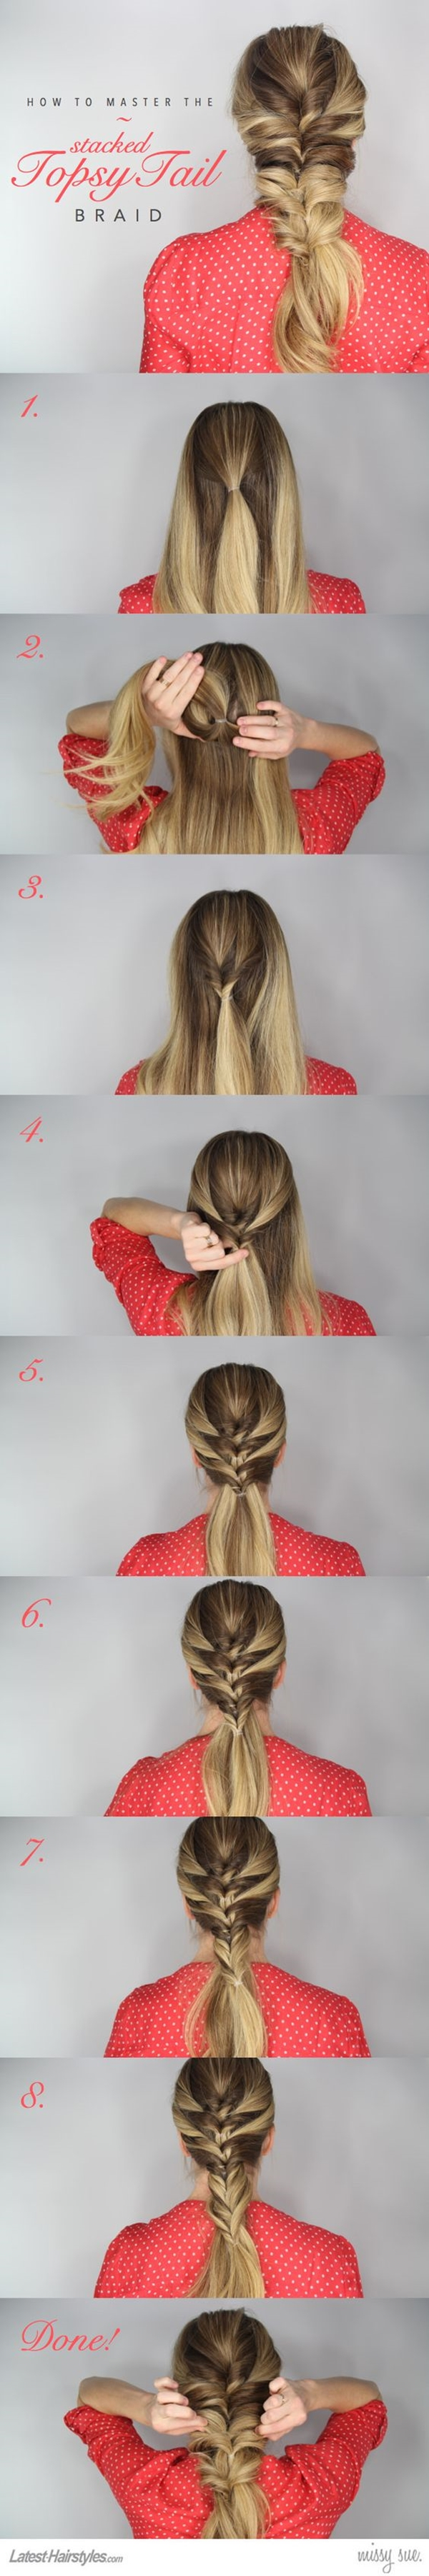 Cute and Girly Hairstyles with Braids - (38)